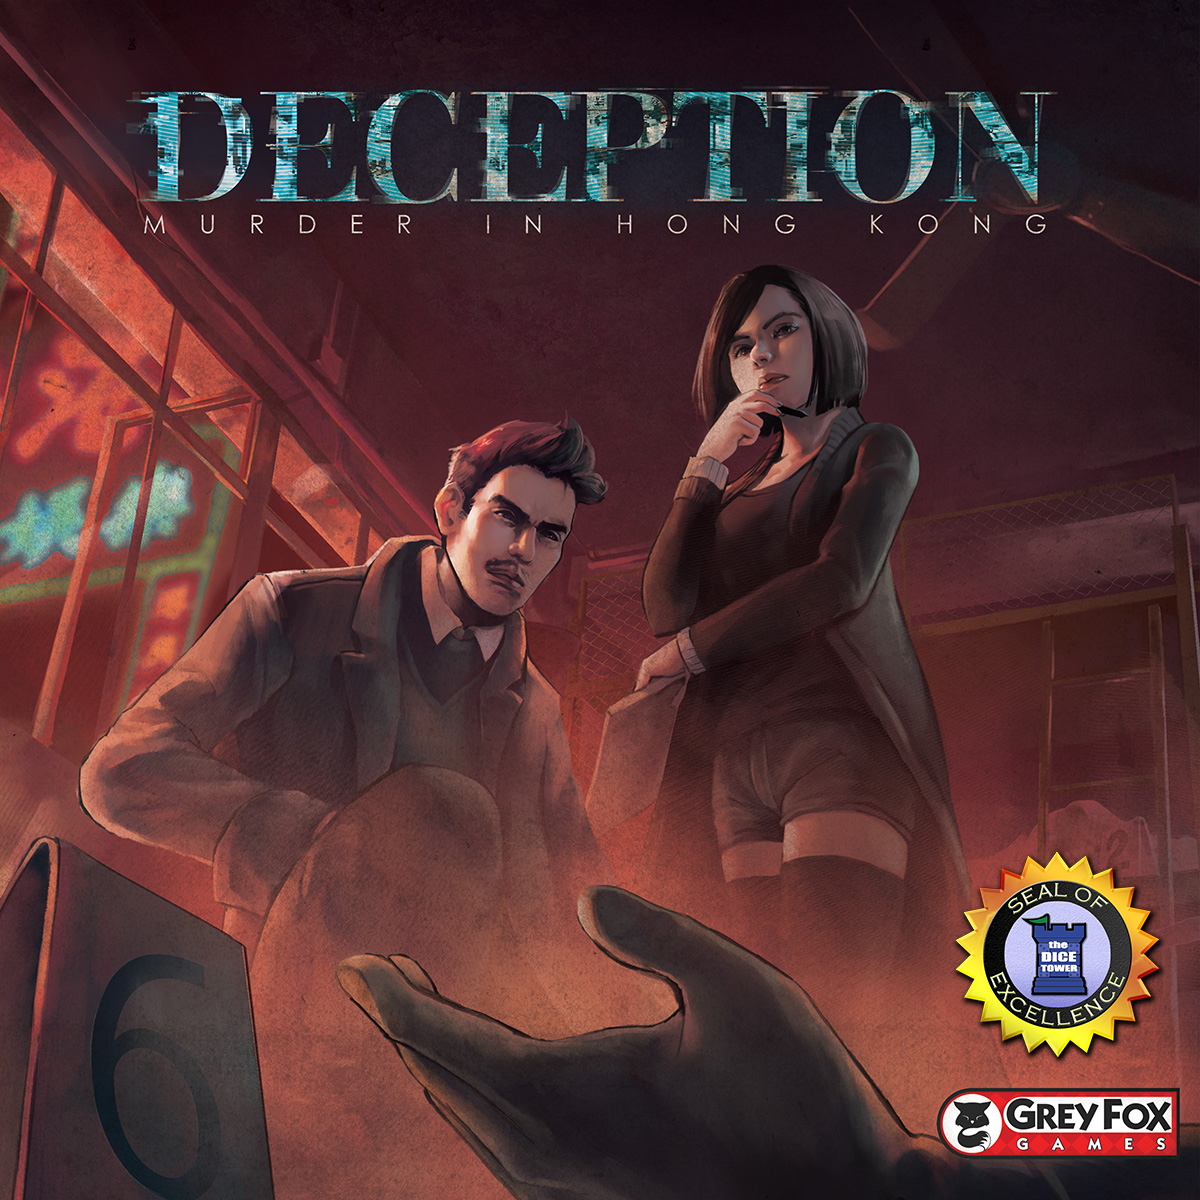 Deception: Murder in Hong Kong - I very much enjoy the interaction involved with social deduction games and Deception fulfills every aspect of what this genre of board game is supposed to have. From the very beginning of the game everyone is a suspect to a murder with only a forensic scientist knowing the true murderer. The twist to this game, is the murderer is one of the very people investigating the killing! This is definitely a game I have enjoyed very much when I have larger groups of people wanting to play a game together.